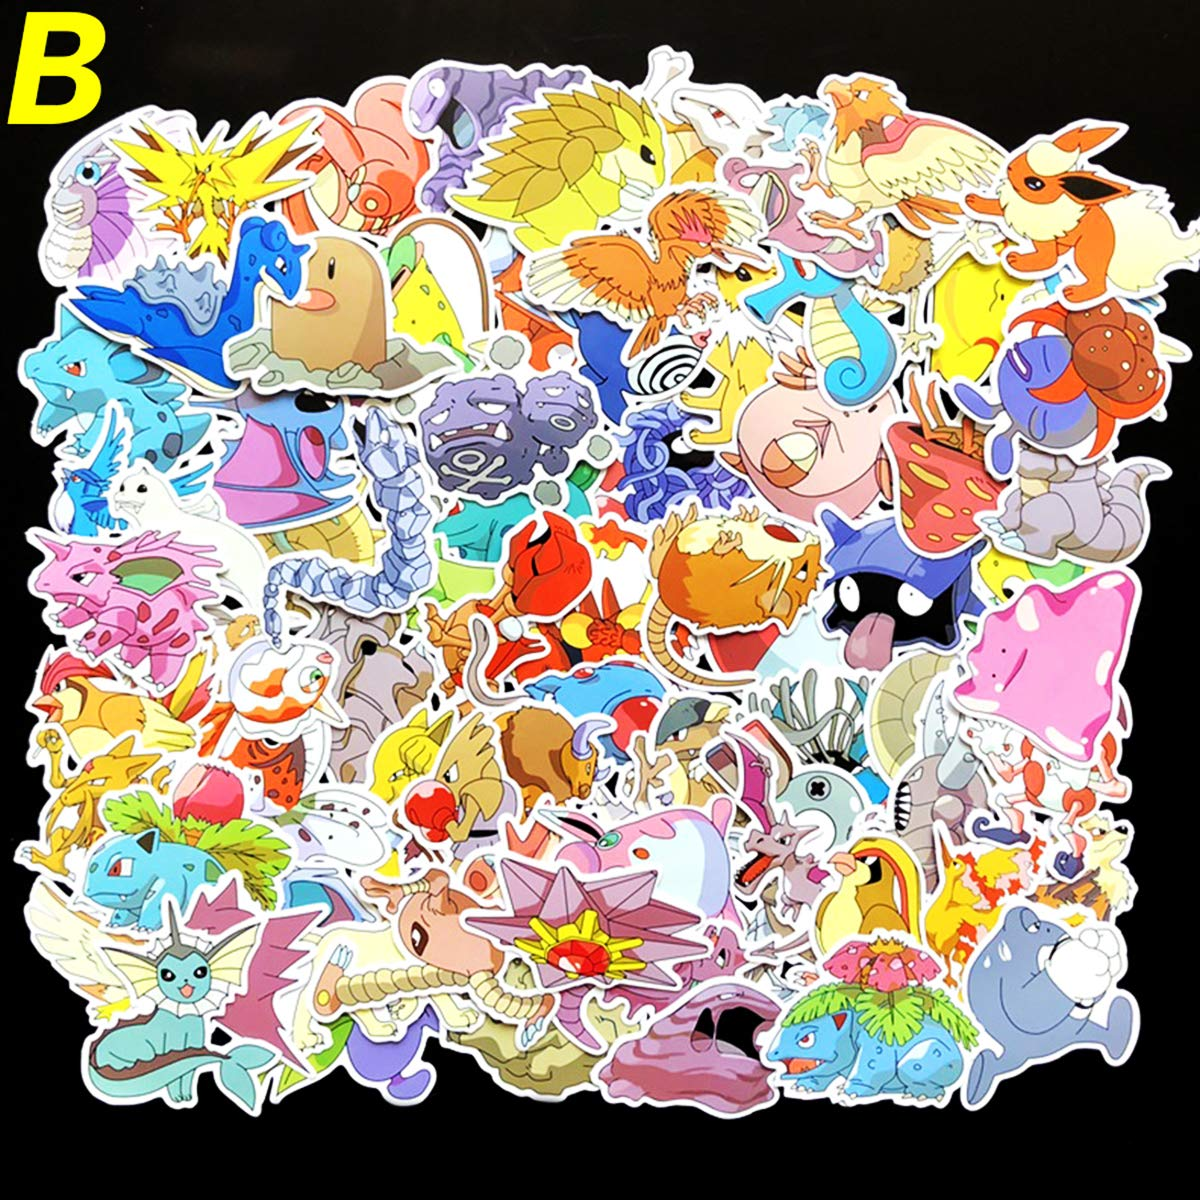 Amazon com 80pcs lot 80 kinds of pokemon stickers waterproof for wall decor fridge bike laptop car phone case cute pokemon stickers b computers